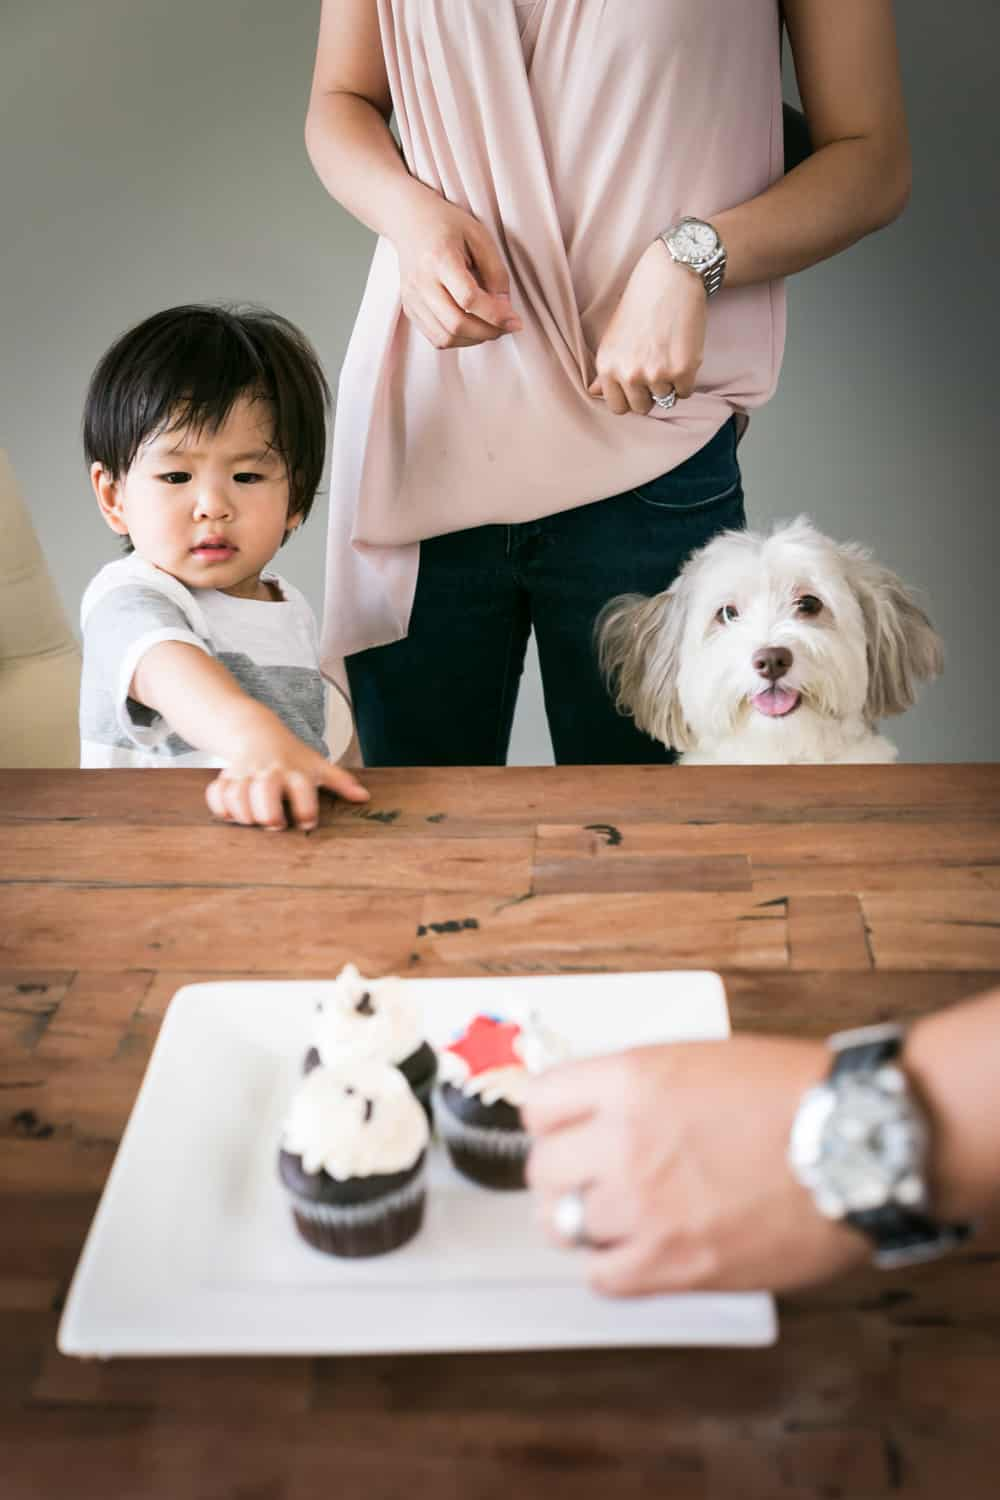 Child pointing to cupcakes with dog watching